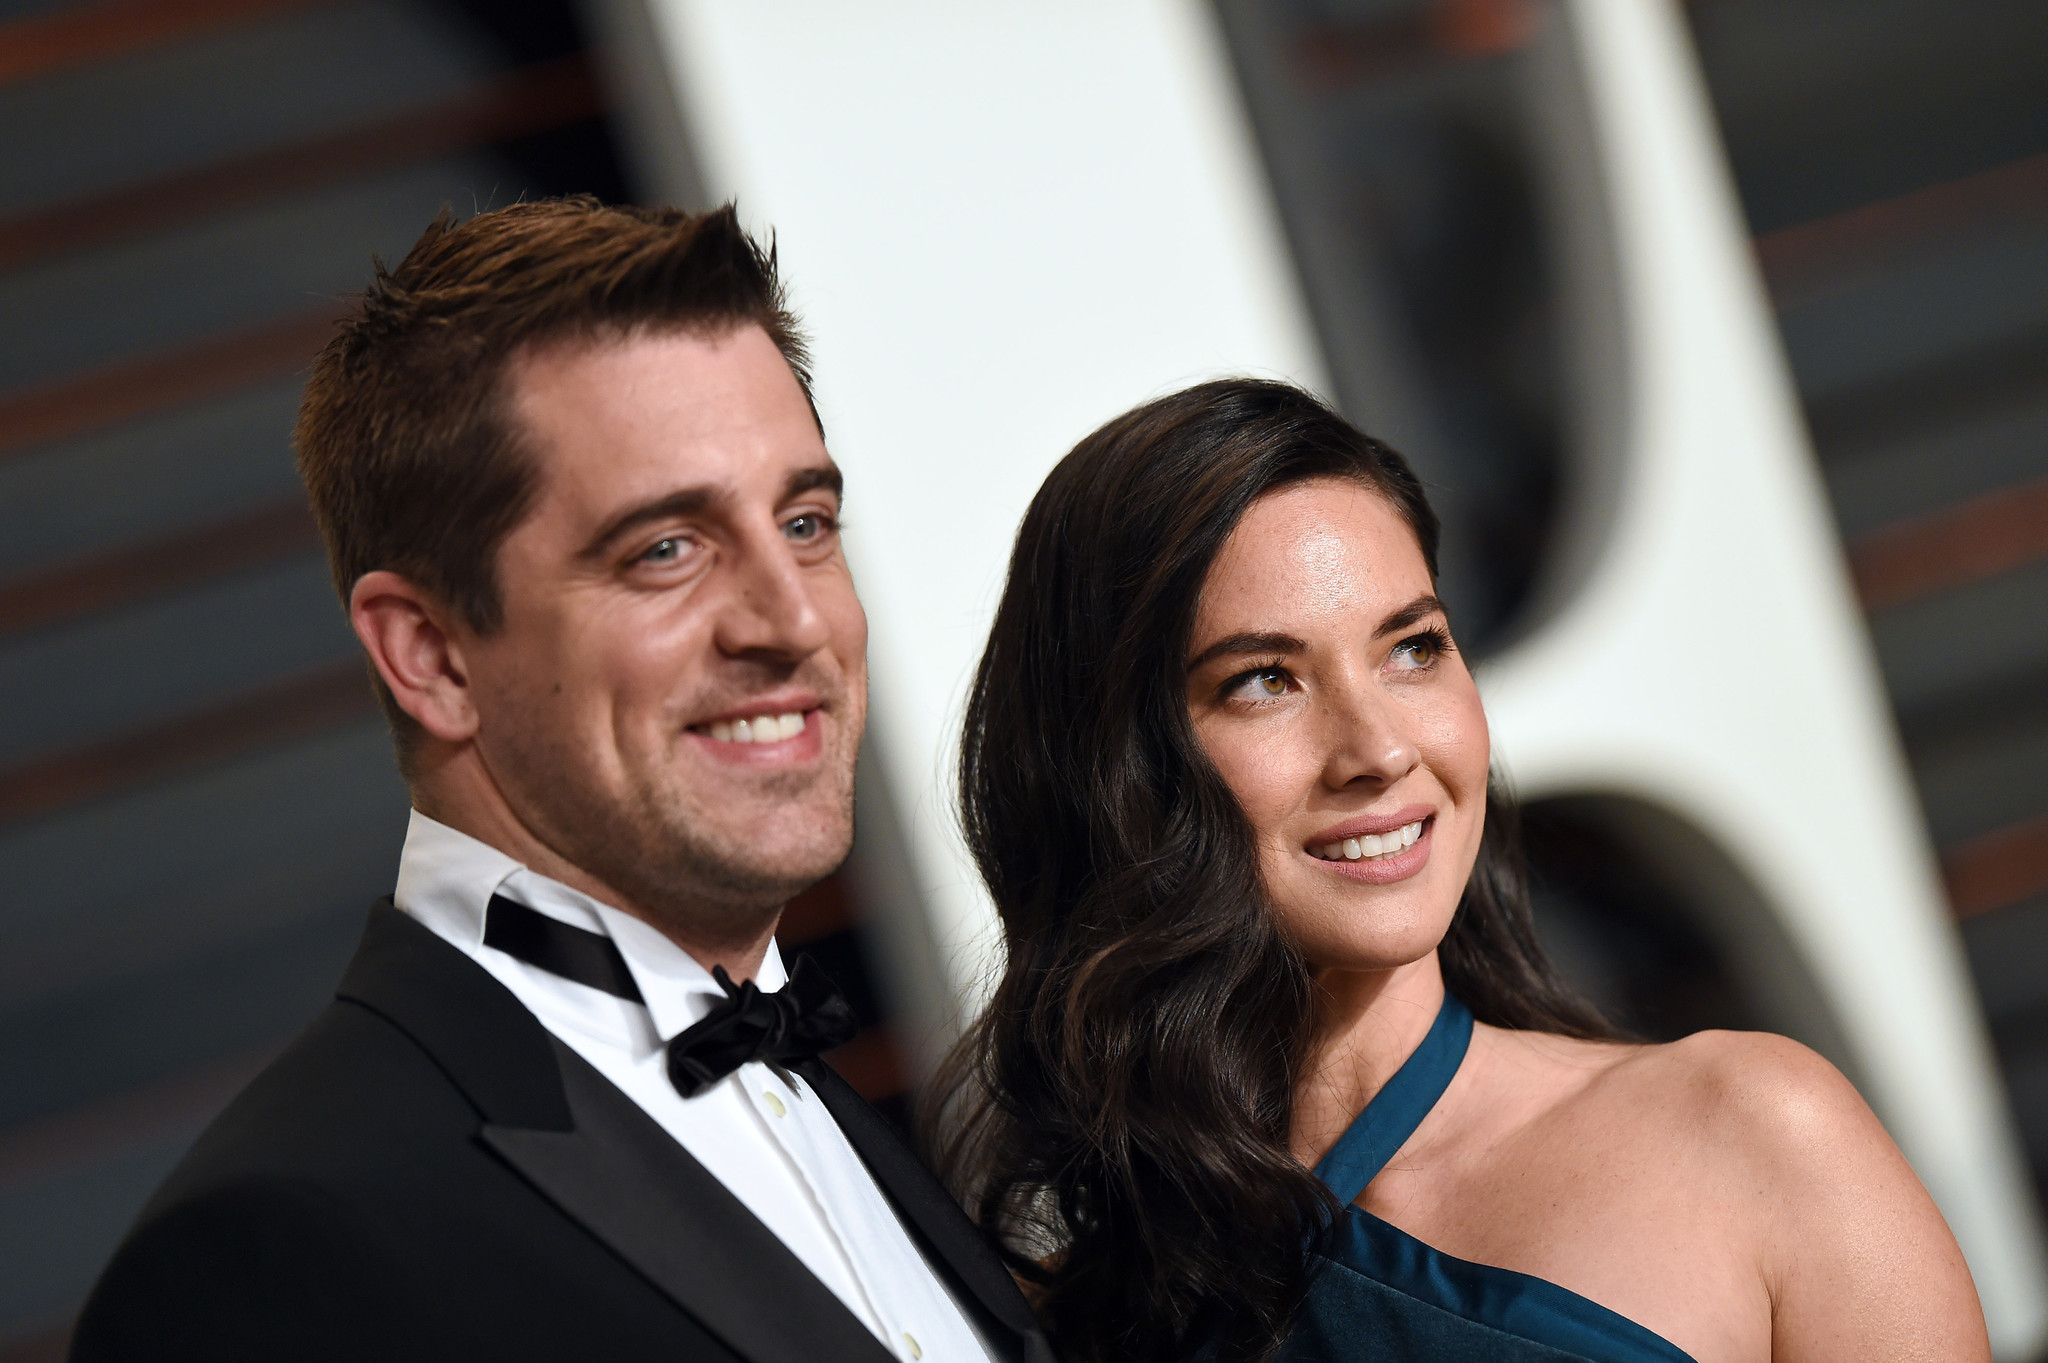 Aaron Rodgers and Olivia Munn break up report Chicago Tribune